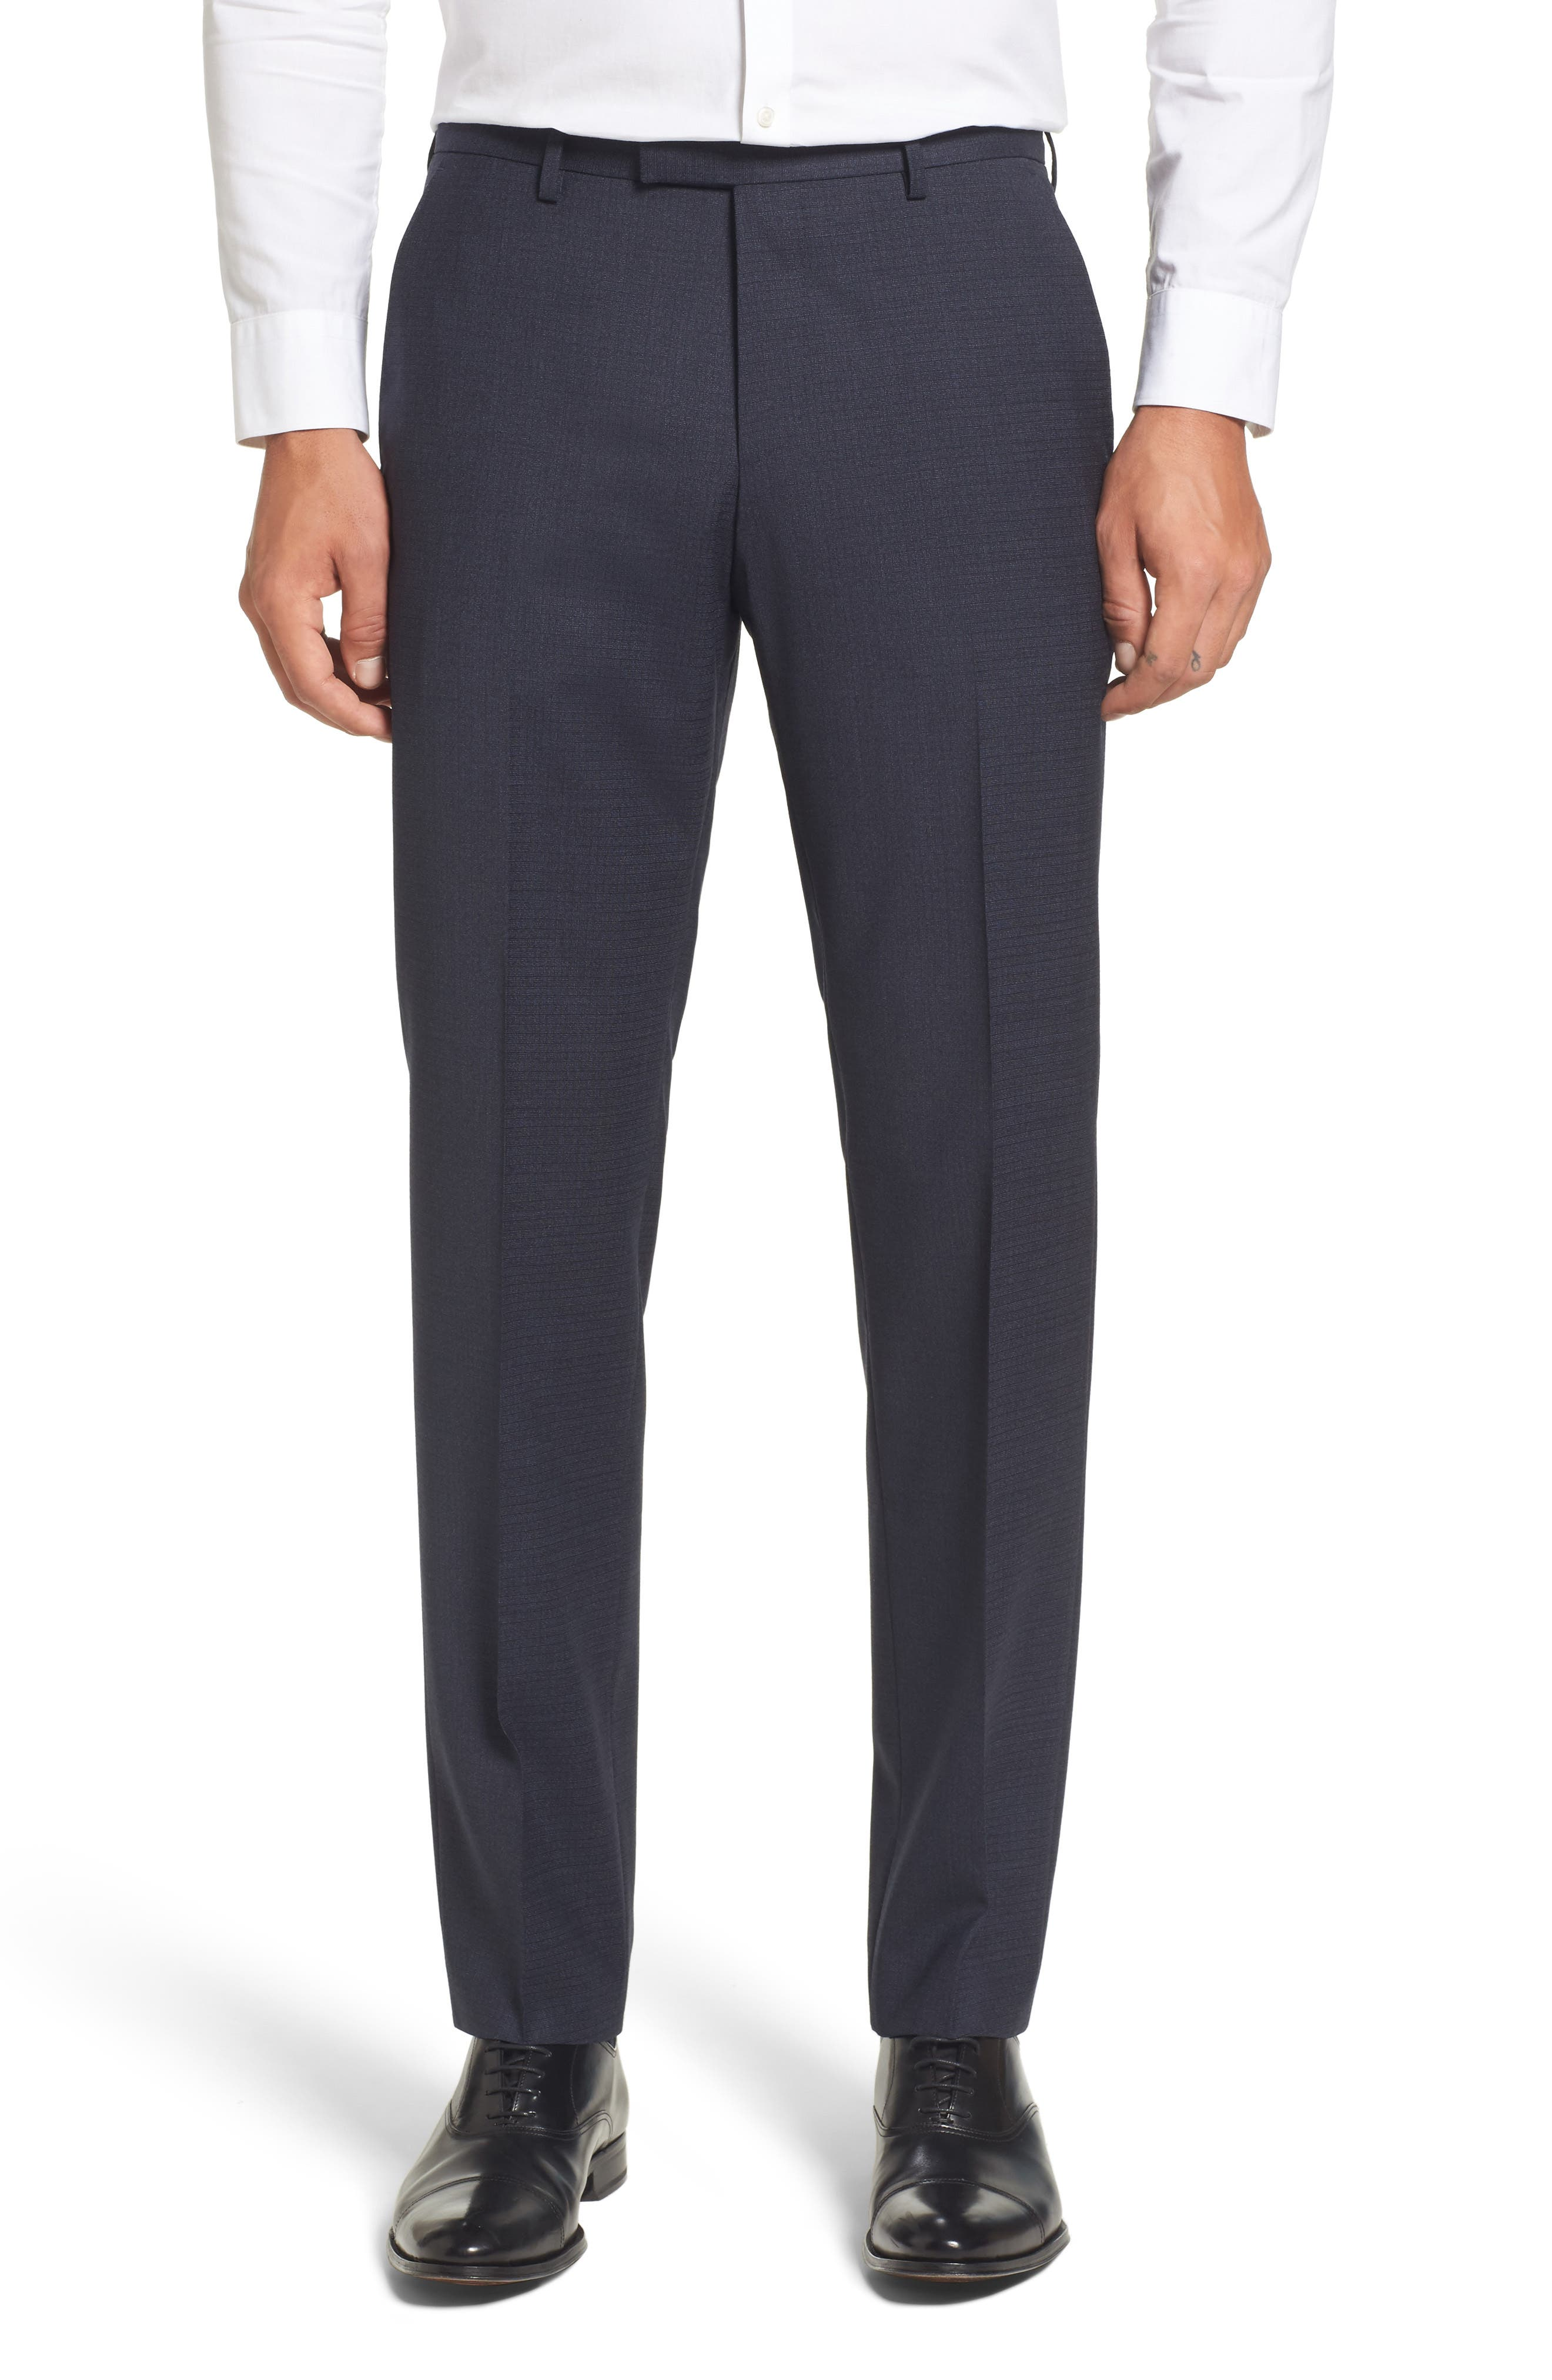 Leenon Classic Fit Plaid Stretch Wool Trousers,                             Main thumbnail 1, color,